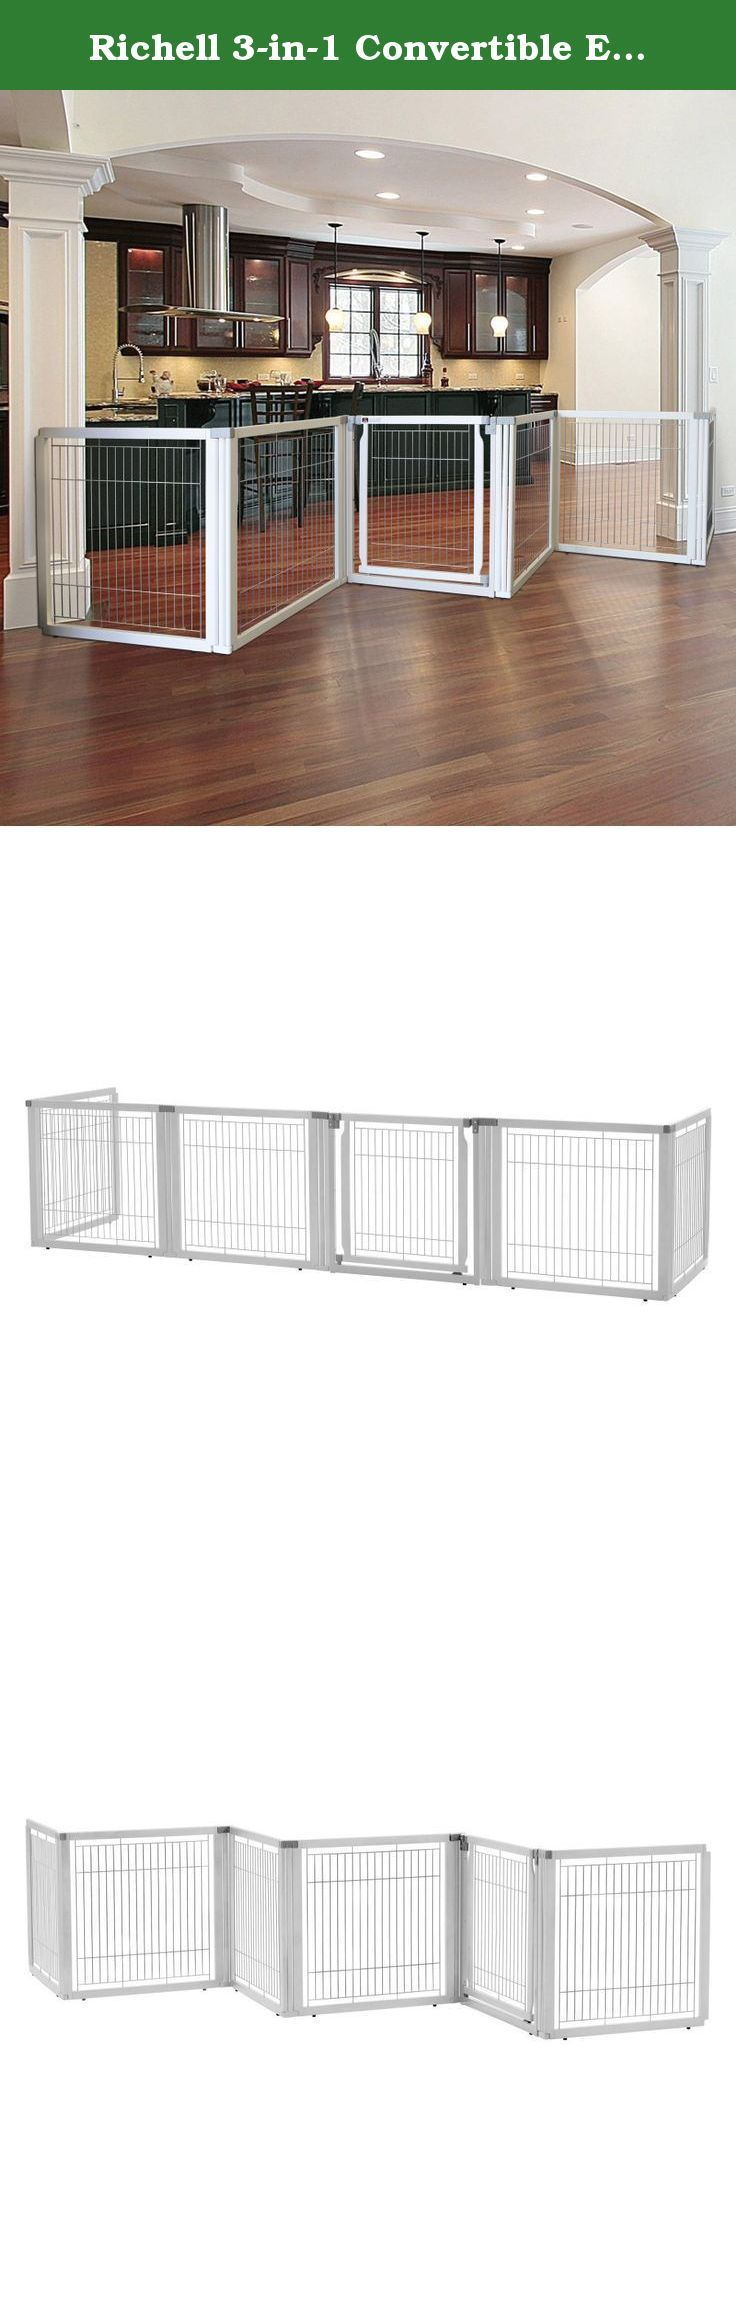 Richell 3-in-1 Convertible Elite Pet Gate White. Richell(R) Convertible Elite Pet Gate The luxury of three pet products in one: the award-winning Convertible Elite Pet Gate converts quickly and easily from a free standing pet gate - to a room divider - to a pet pen! It's specifically designed to confine your pet safely in areas with larger openings, yet fit beautifully in any home decor! The gate includes a lockable door that allows you to move freely from room to room without having to...